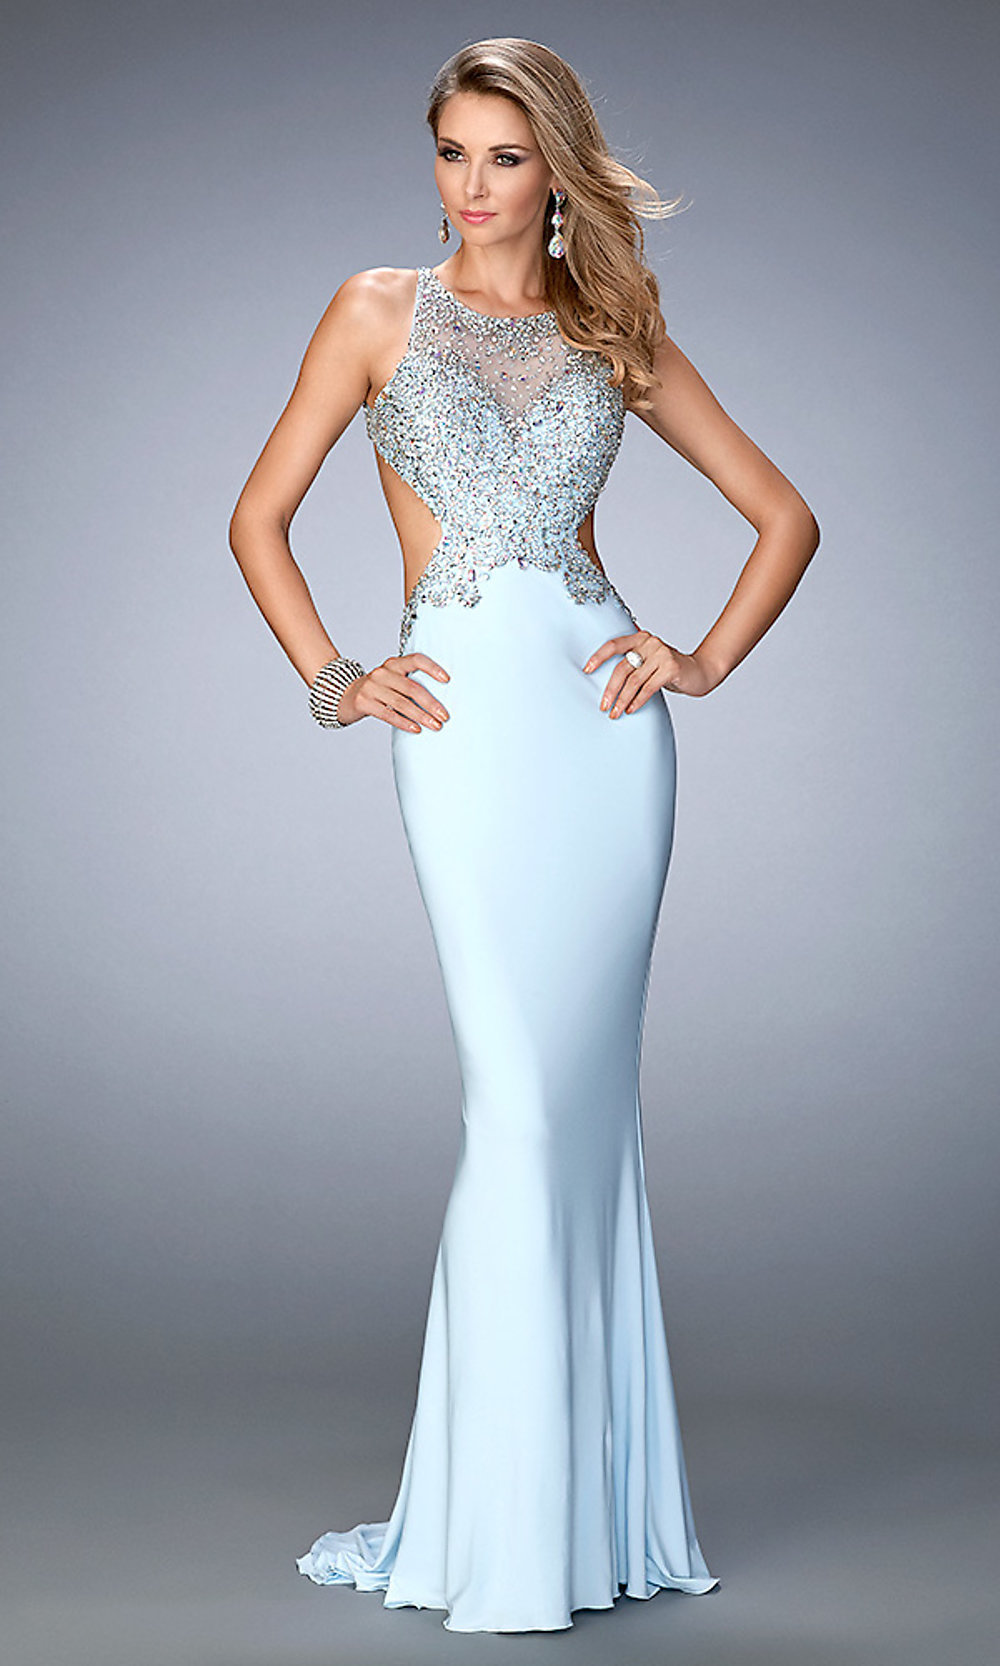 La Femme Prom Dresses Elegant Formal Gowns Promgirl